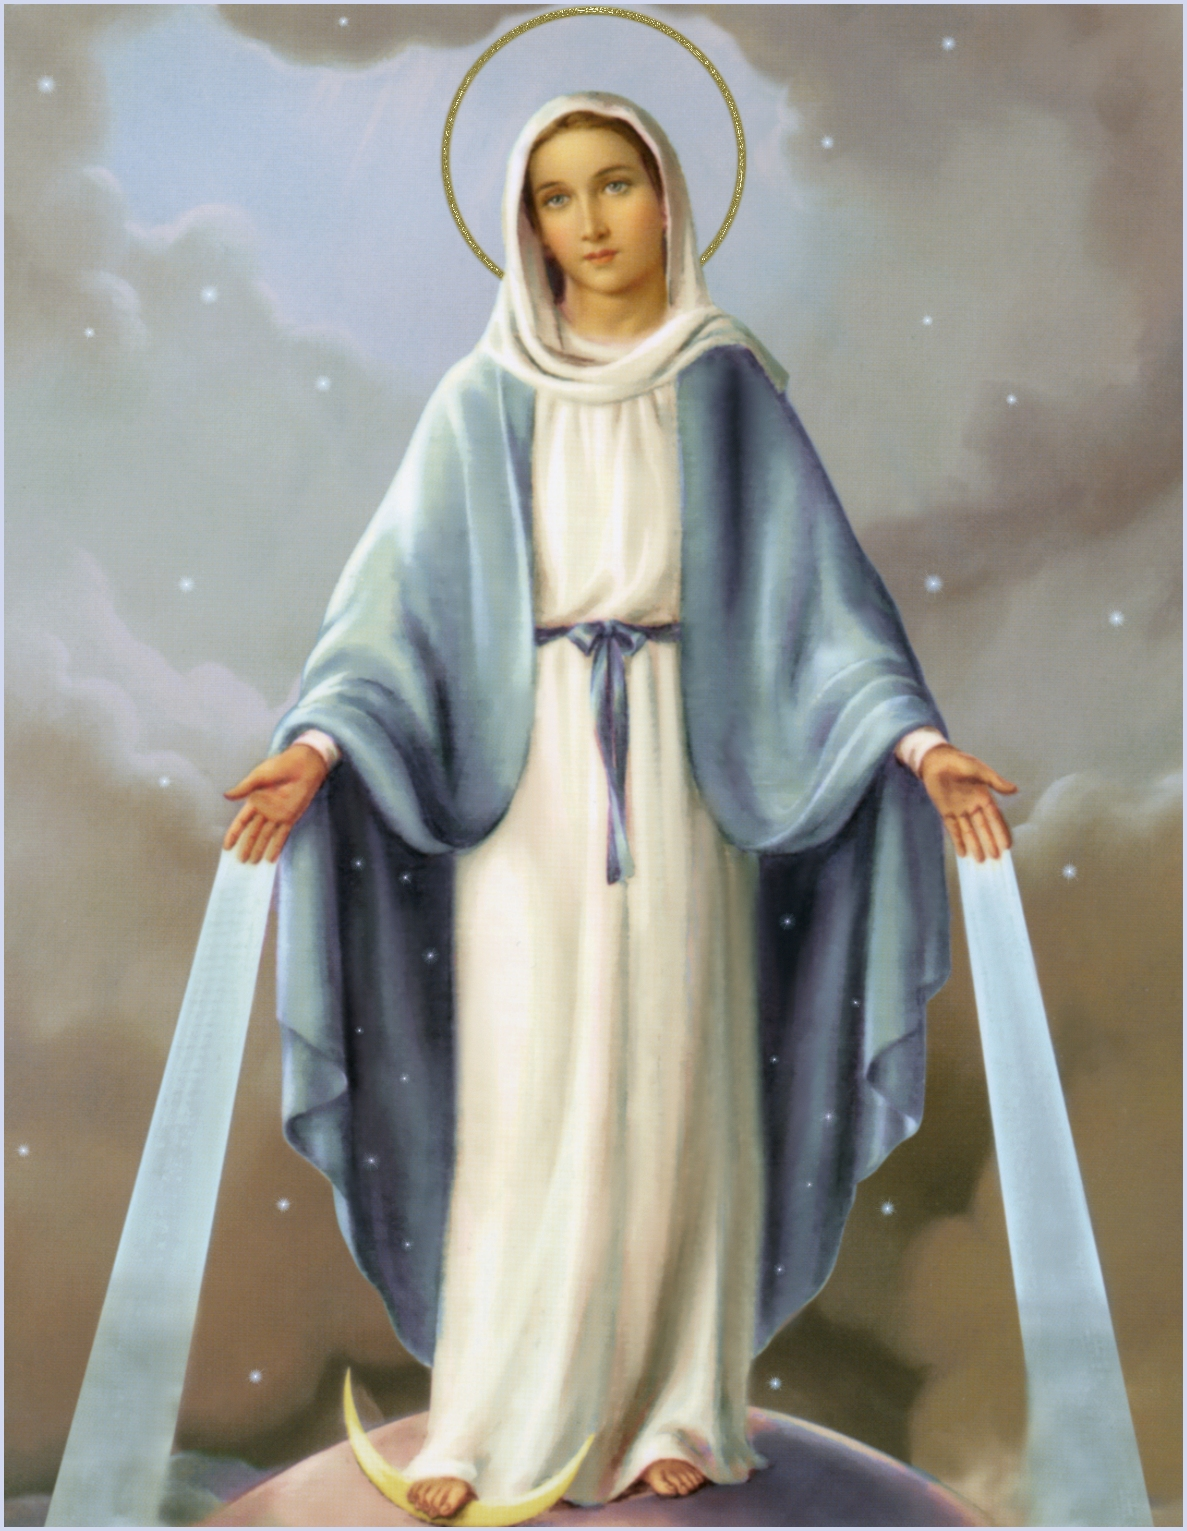 a study of the life and role of mary the mother of jesus Study guide for mary, mother of god written by stephen k ray based on the ignatius bible demonstrates her role as intercessor (jn 2:1 11) jesus' life (mt 2:13 15.